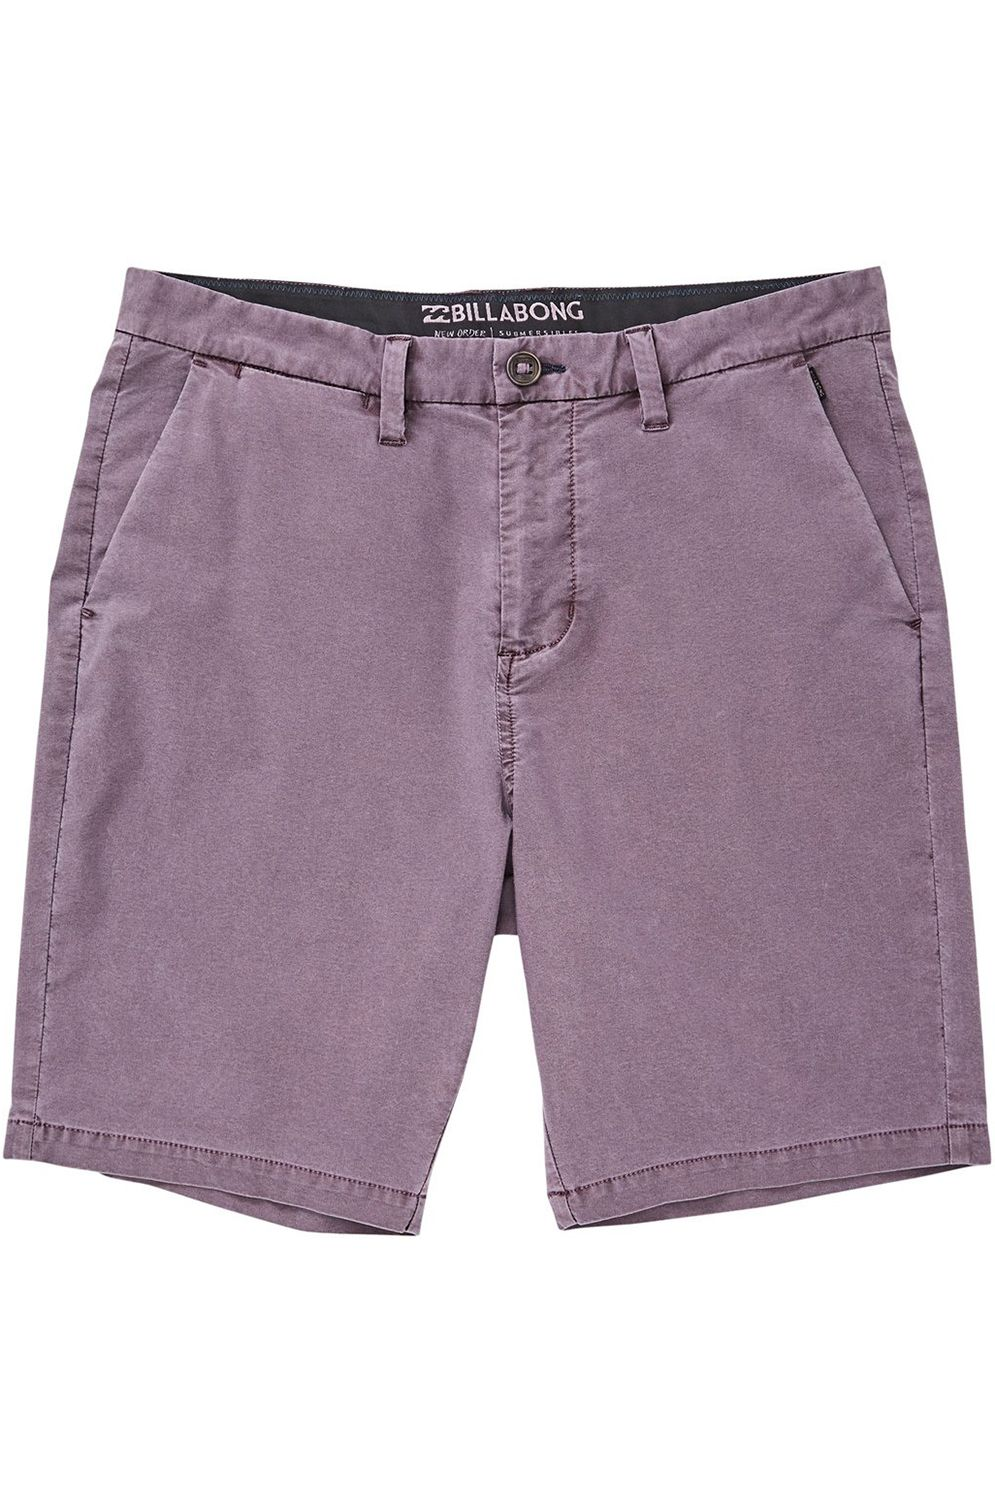 Walkshorts Billabong NEW ORDER X OVD Purple Haze